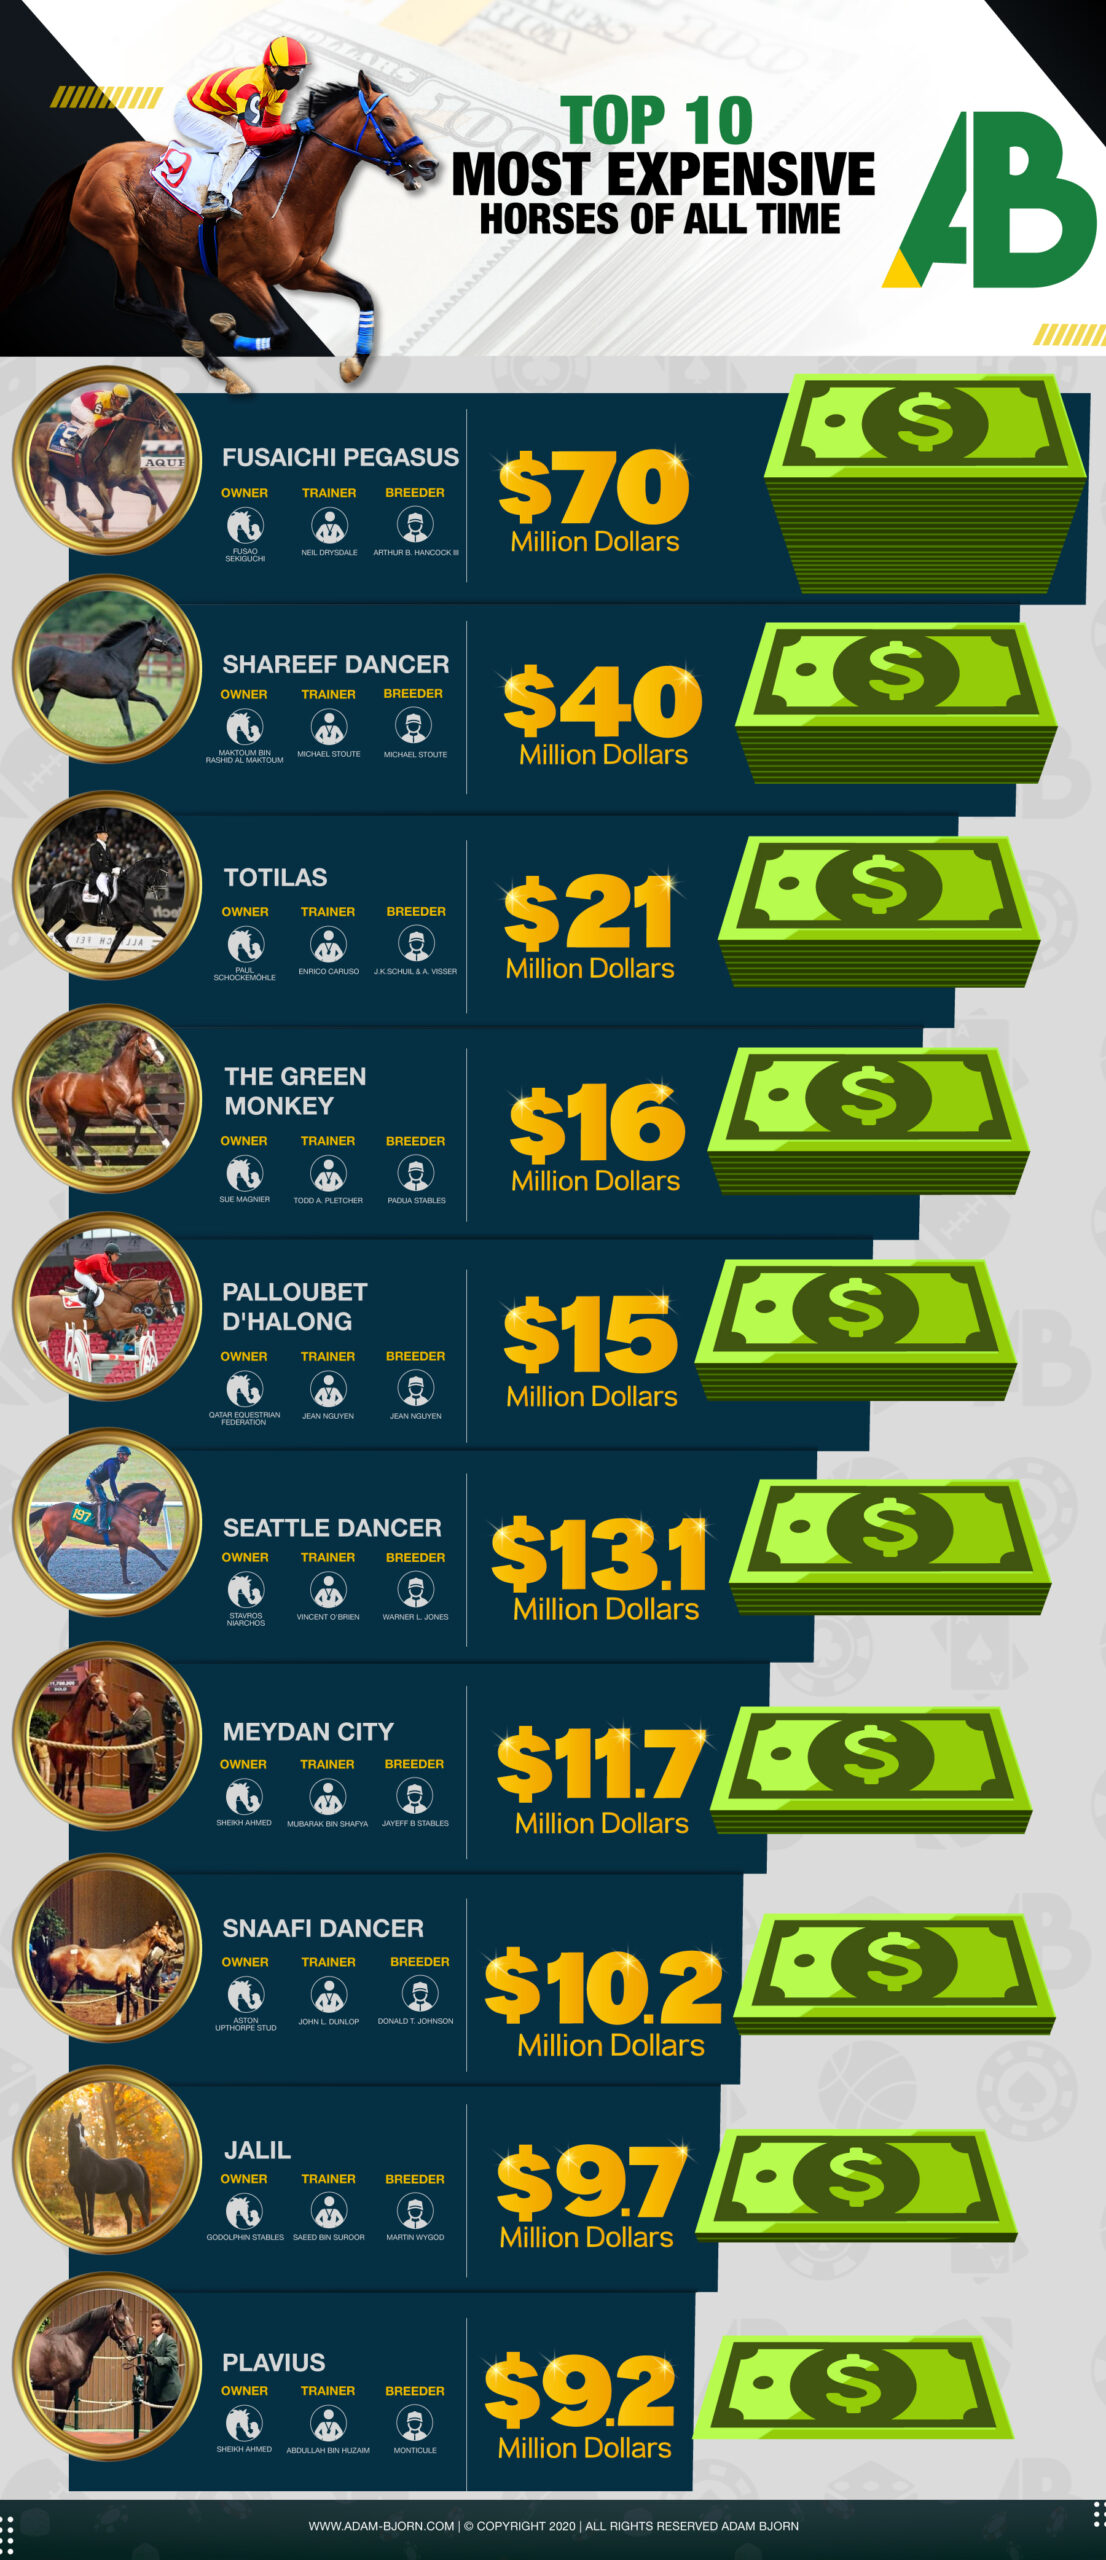 Most Expensive Horses of all Time